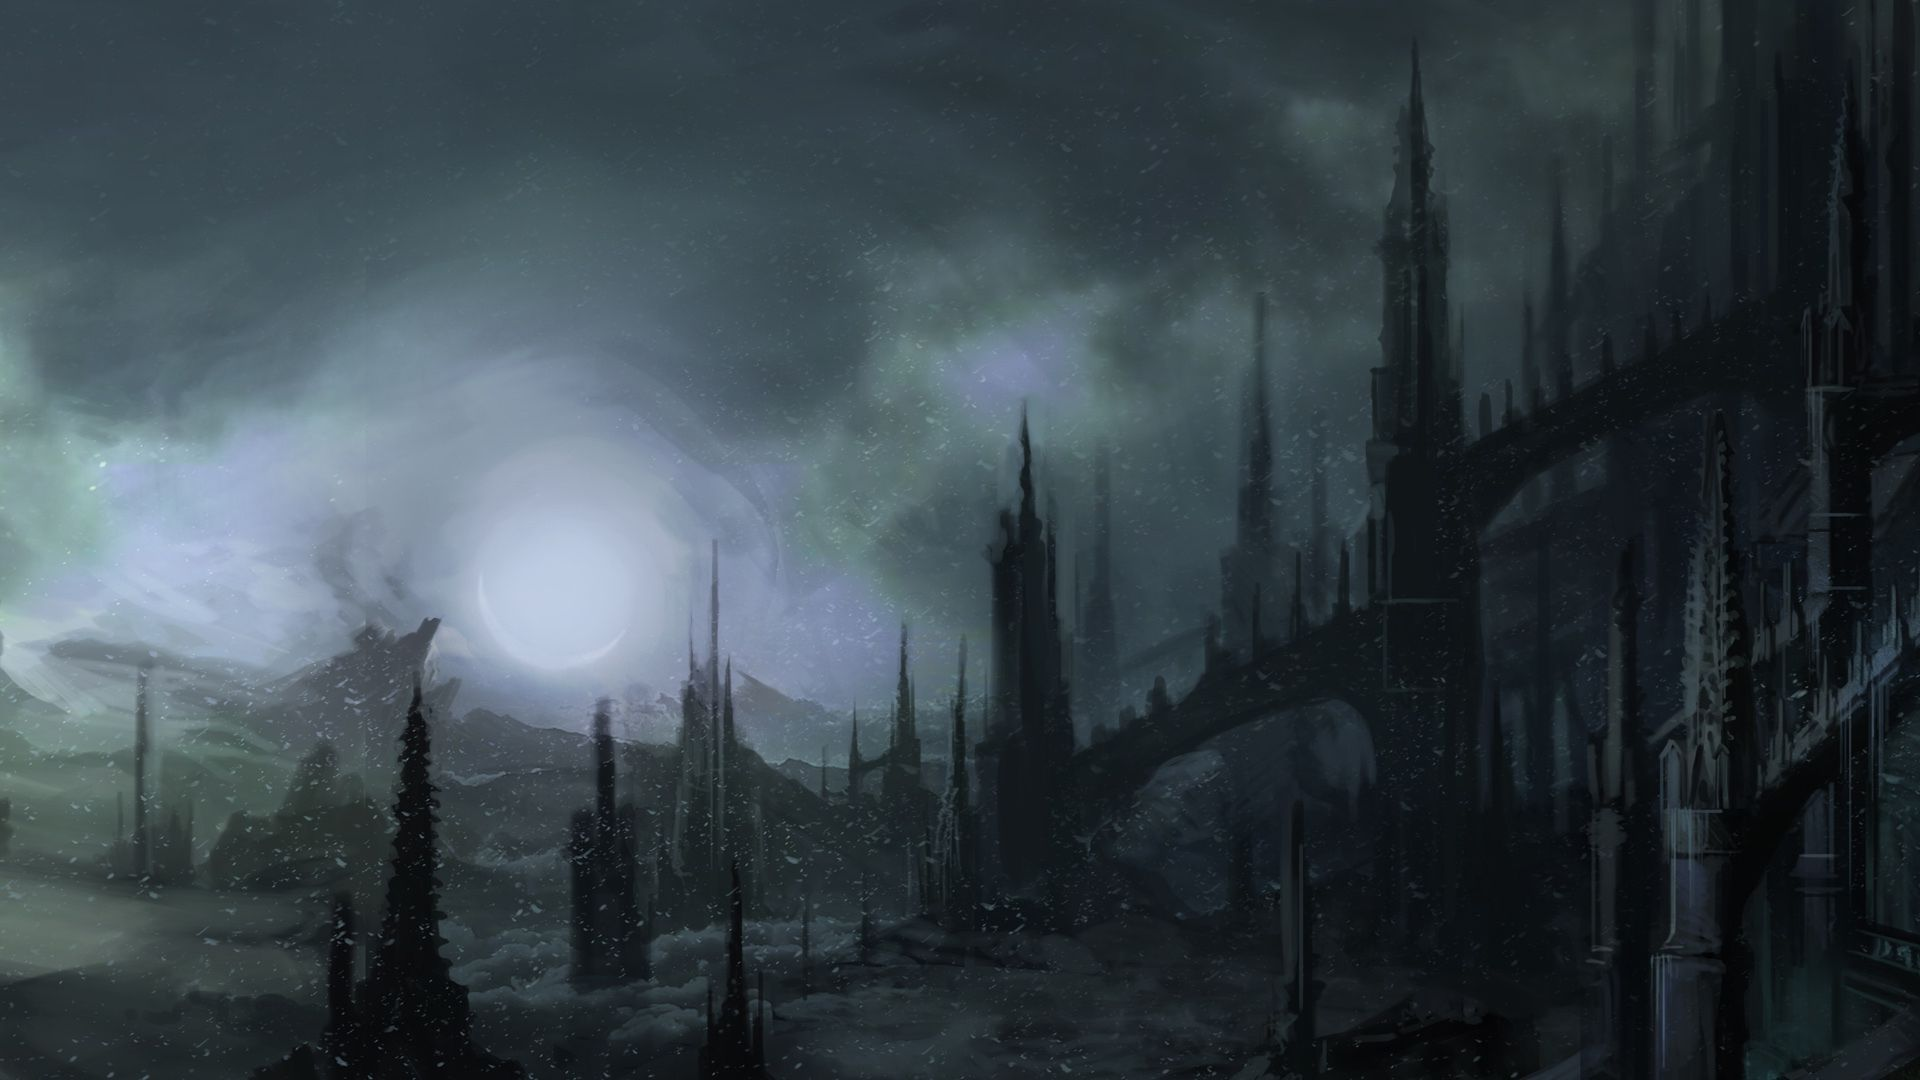 Gothic castle wallpaper 17209 1920x1080